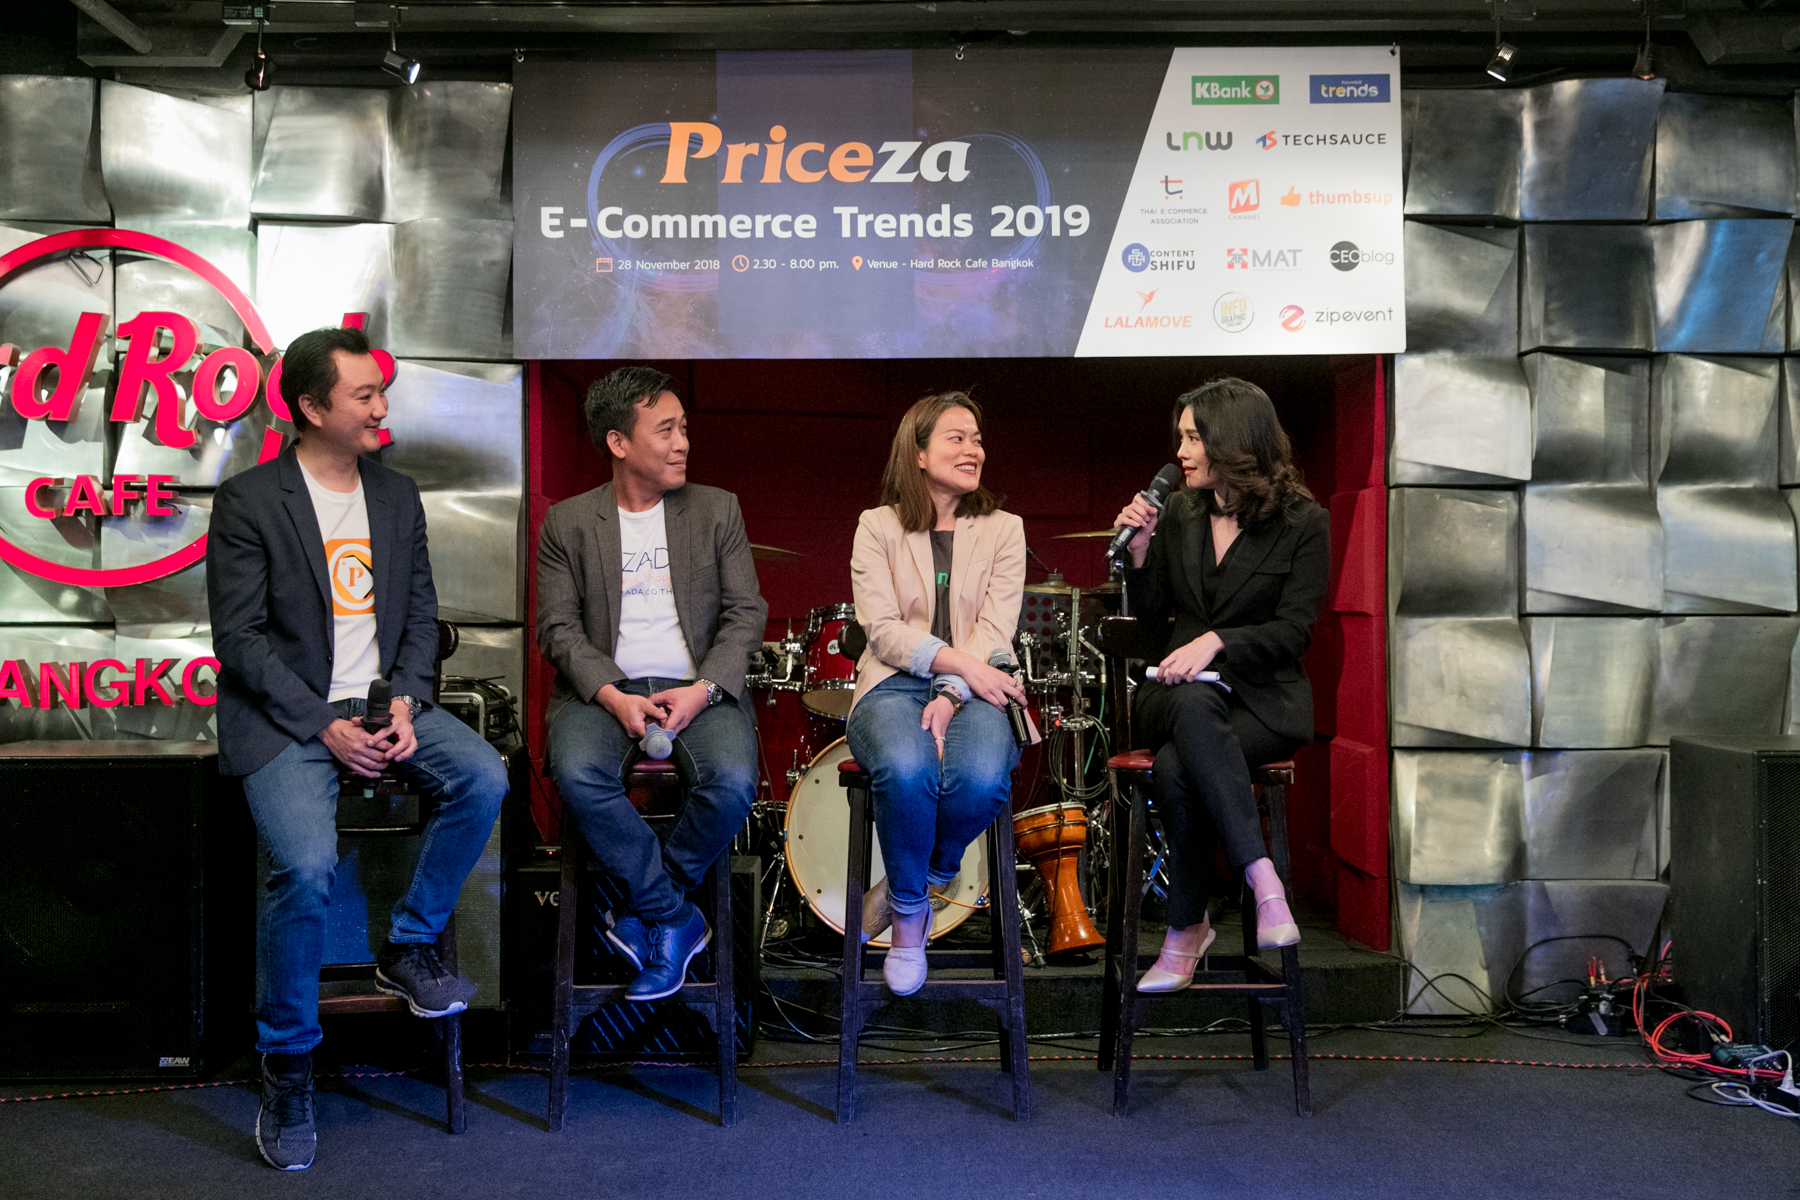 Priceza E-Commerce Trends: Remarking 4 E-Commerce Trends in